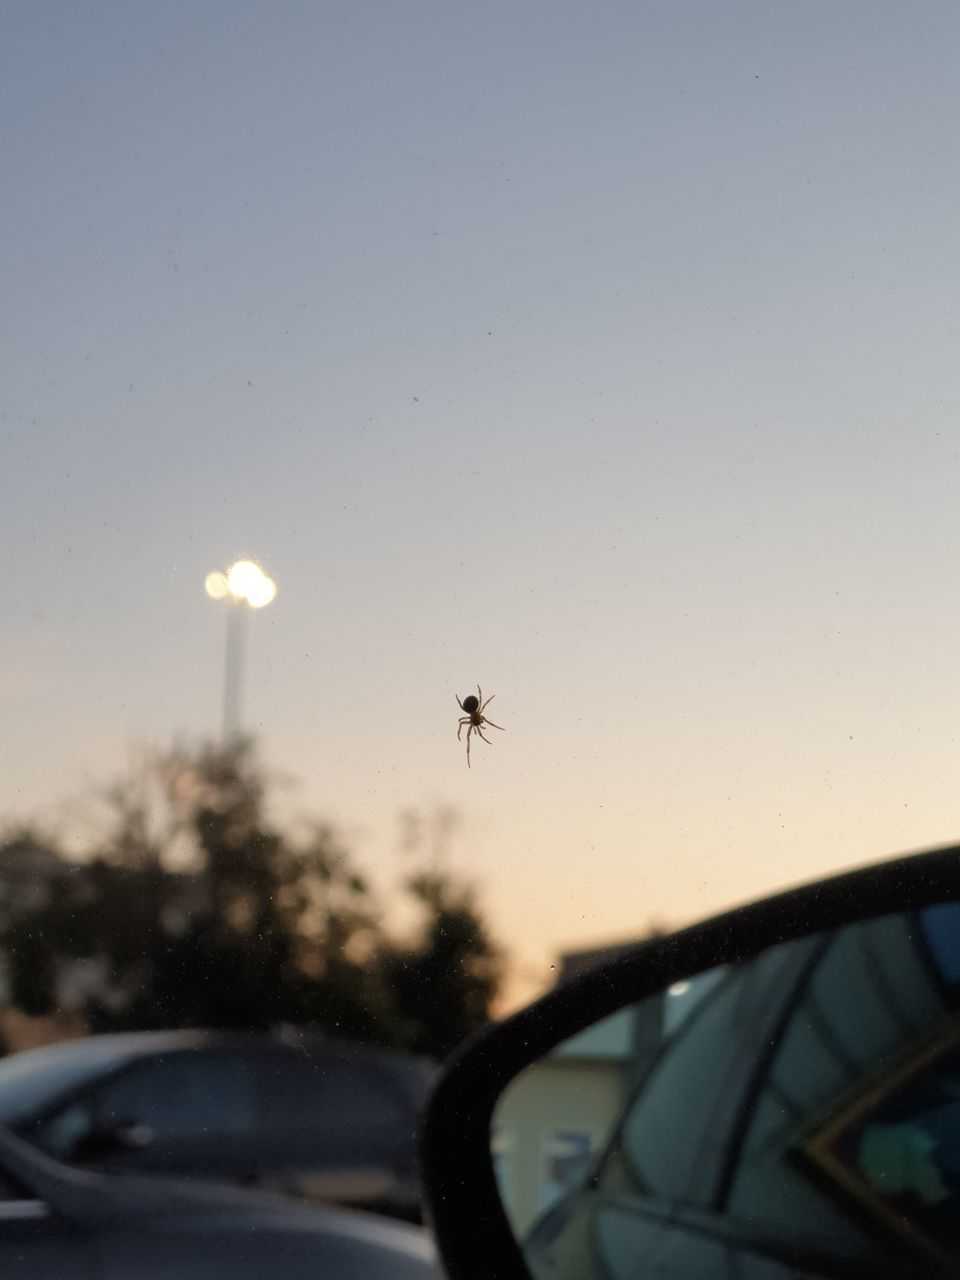 INSECT ON GLASS WINDOW